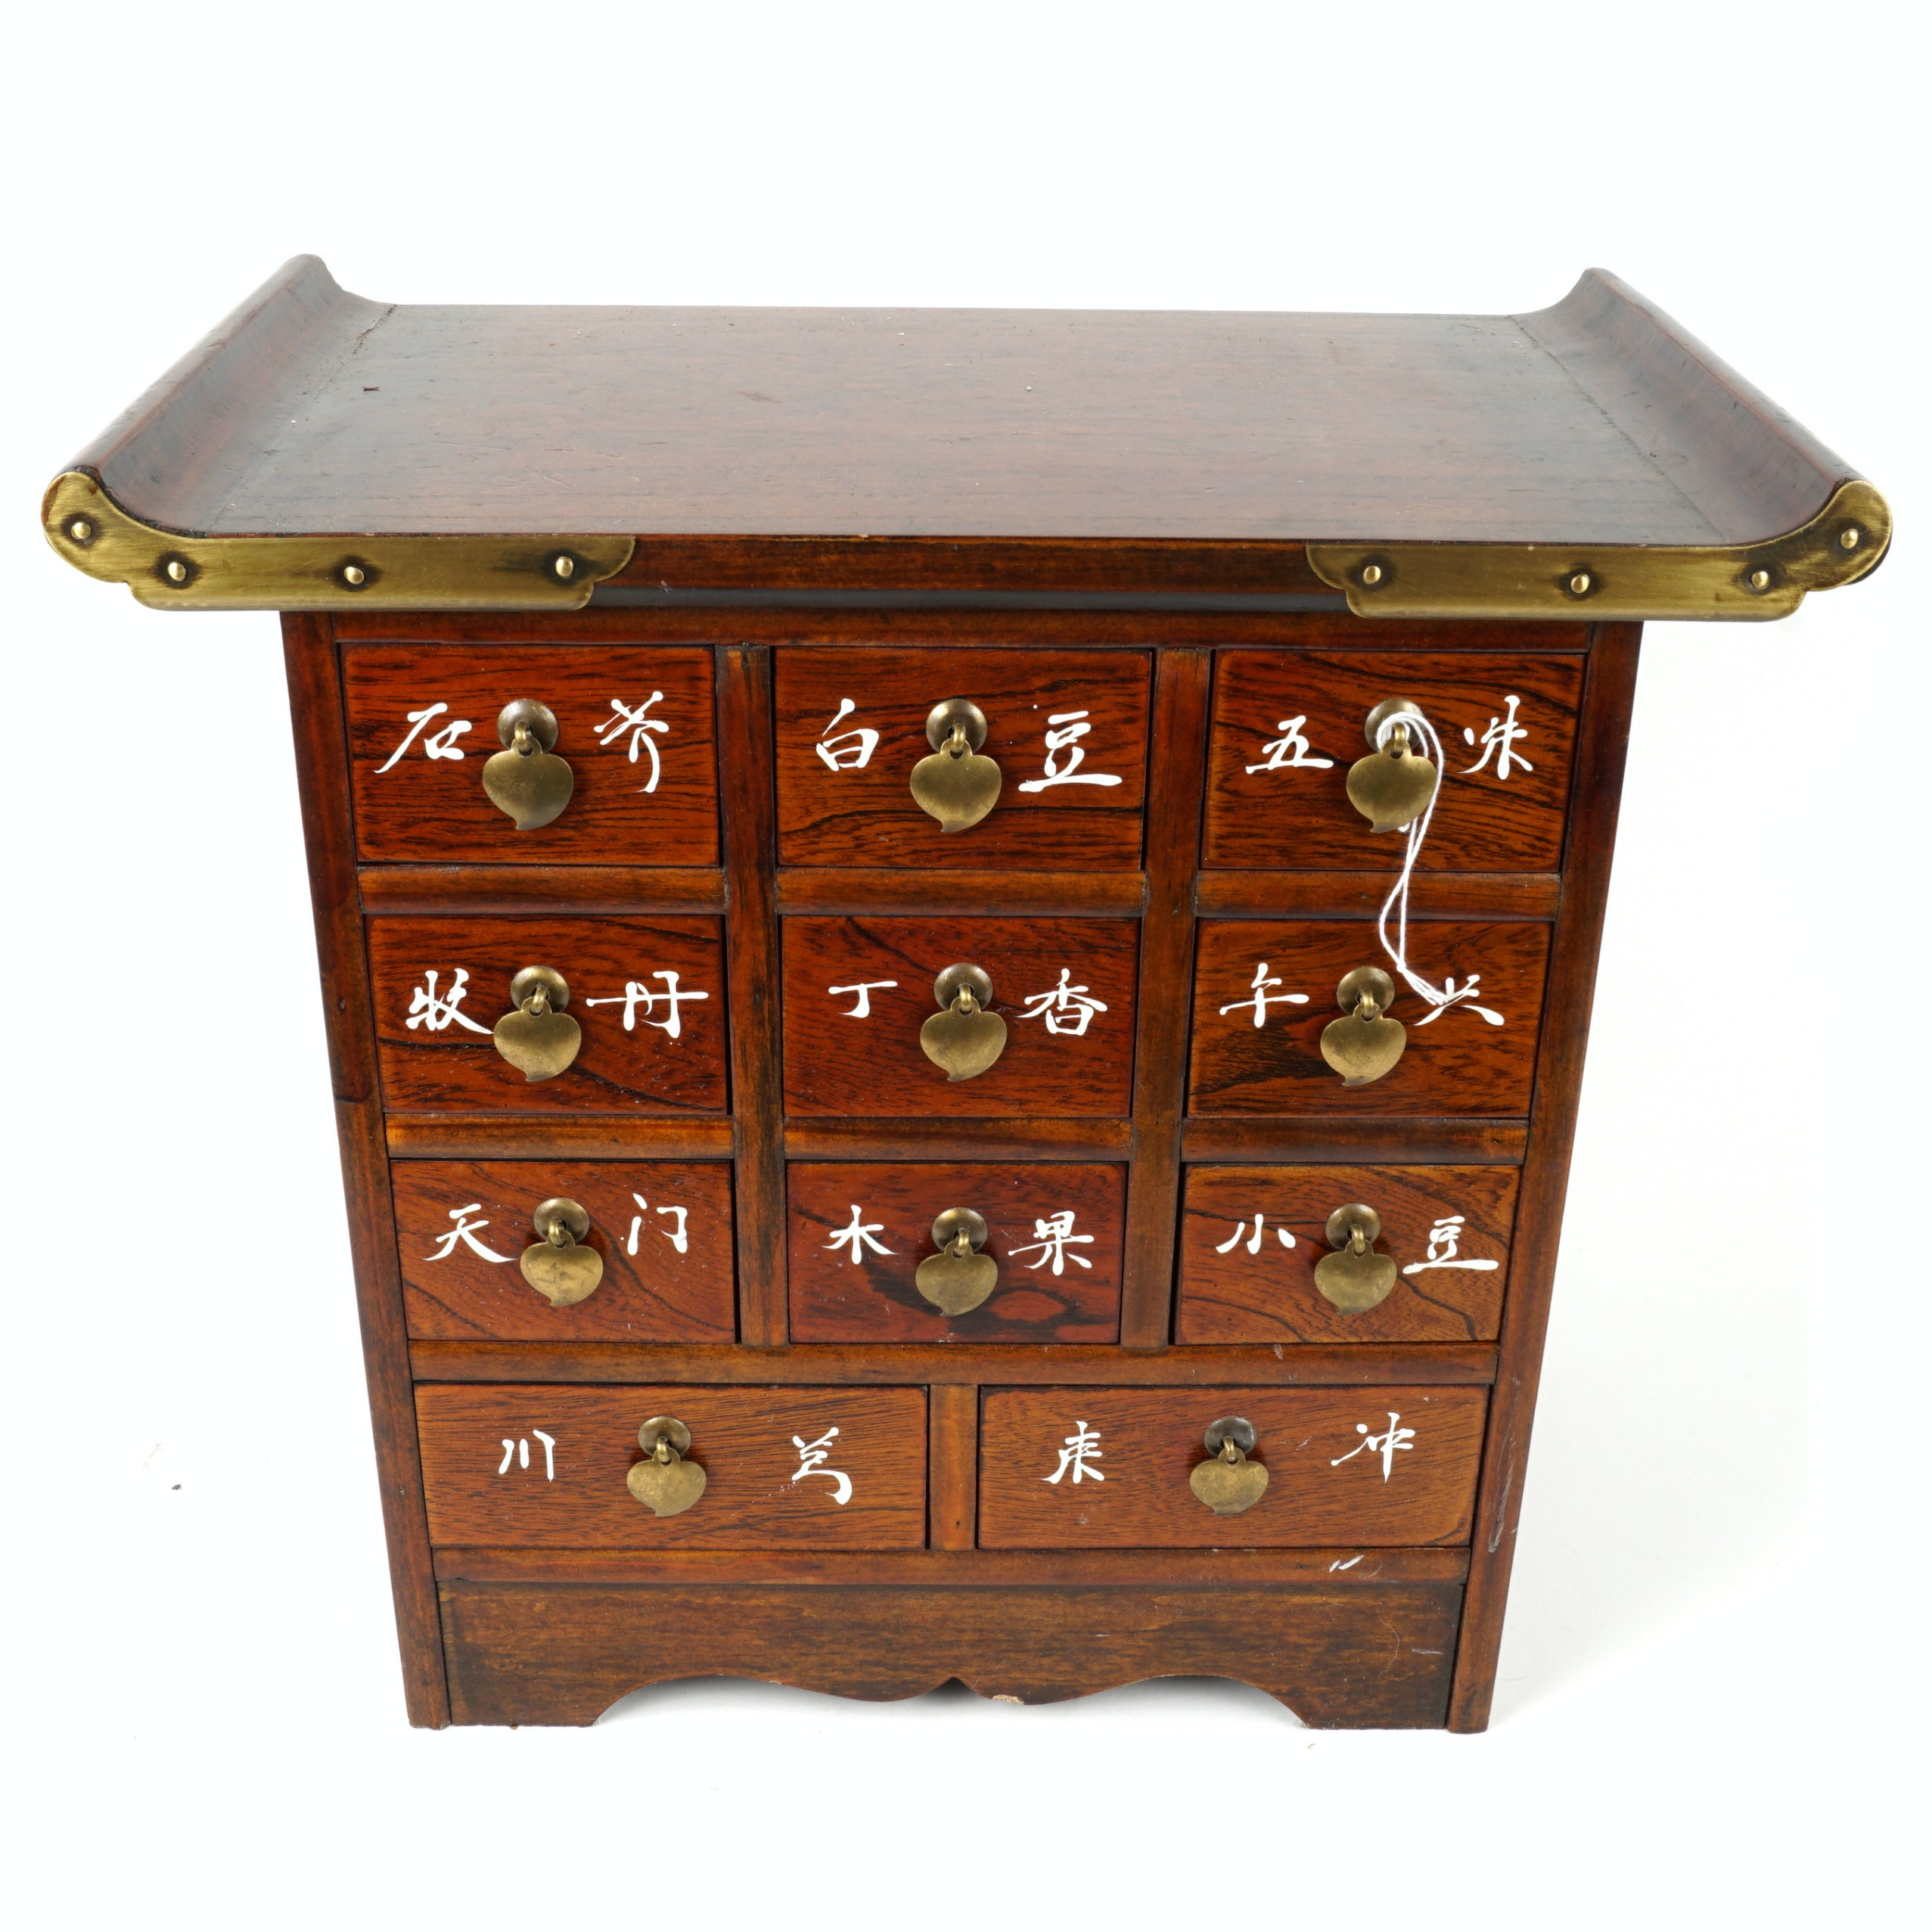 East Asian Style Small Apothecary Tabletop Chest